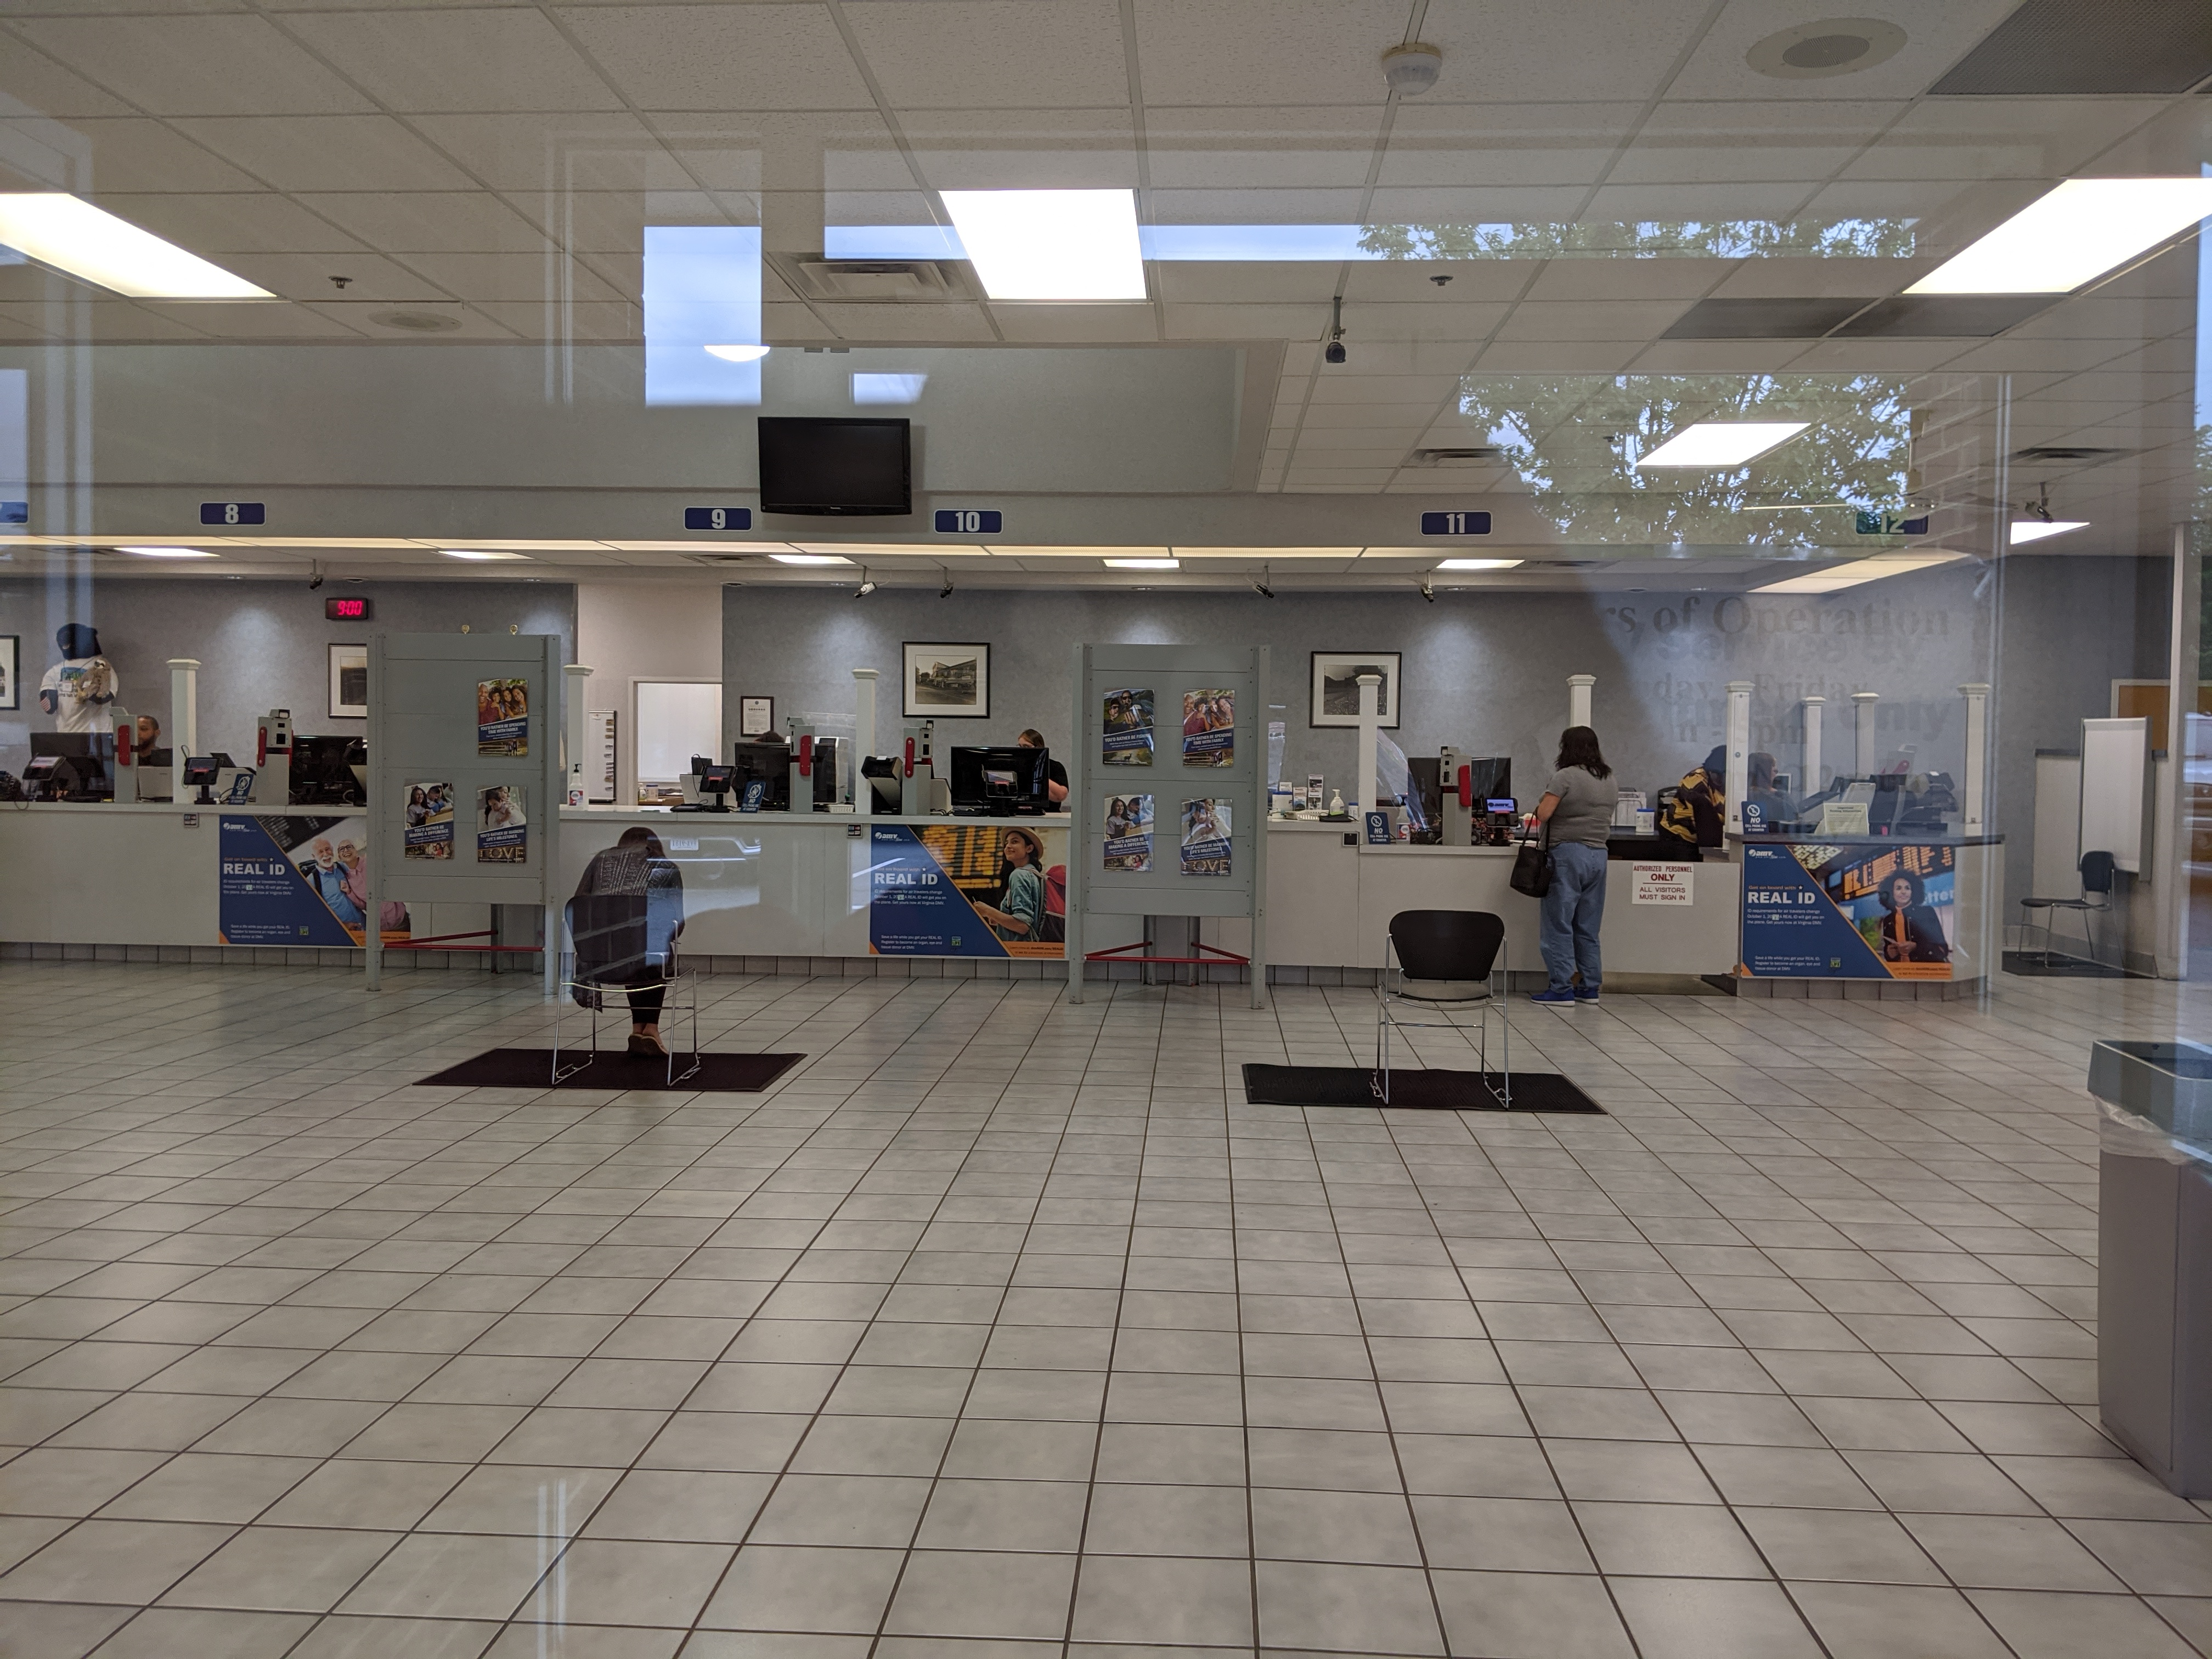 DMV by appointment and with Coronavirus social restrictions